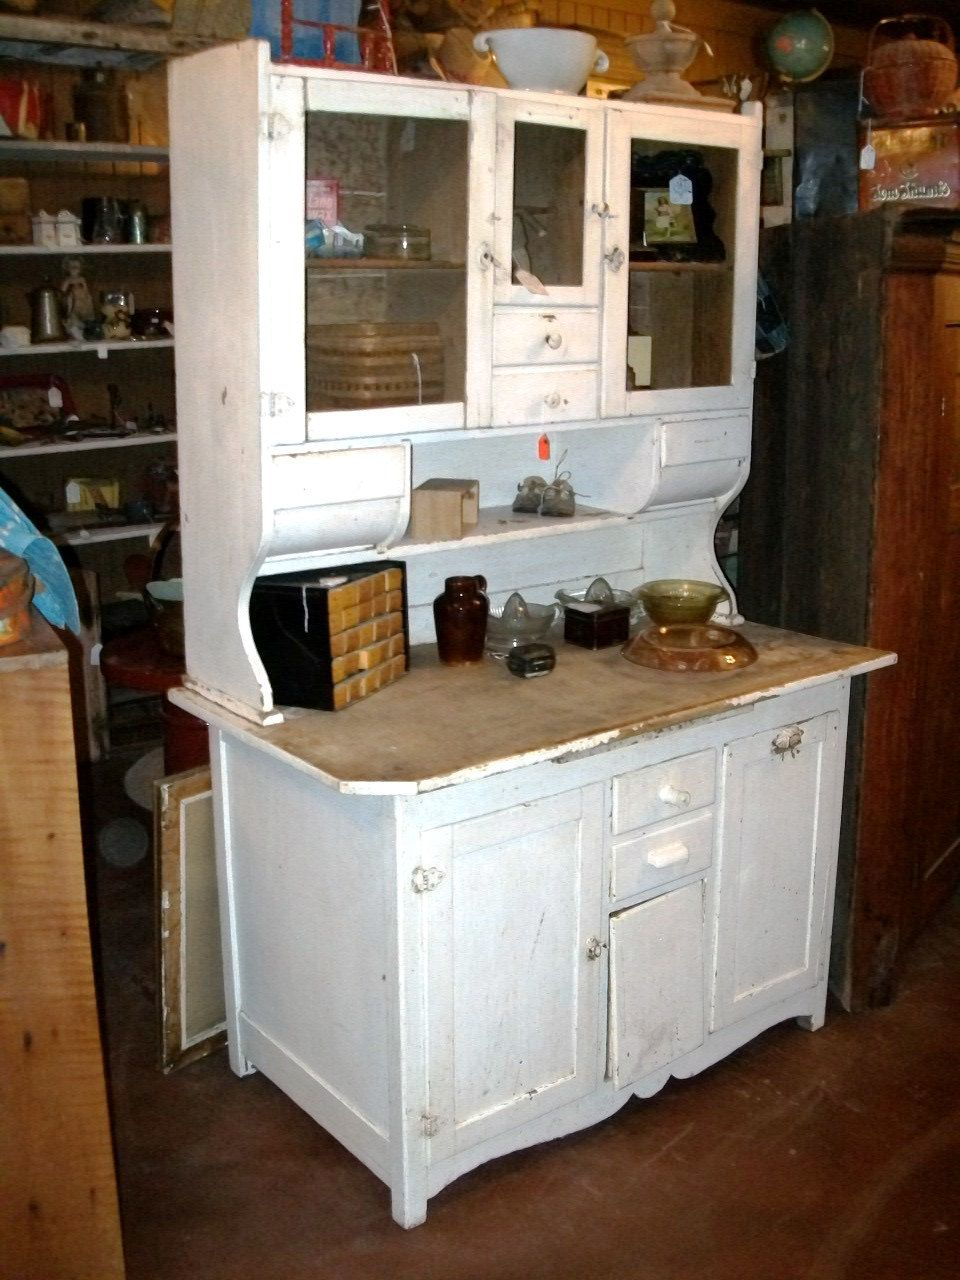 Oak Bakers Kitchen Cupboard 2 Piece Wooden Cabinet For Flour Sugar And Spices From Late 1800 S 589 Kitchen Cupboards Kitchen Cabinet Styles Bakers Kitchen